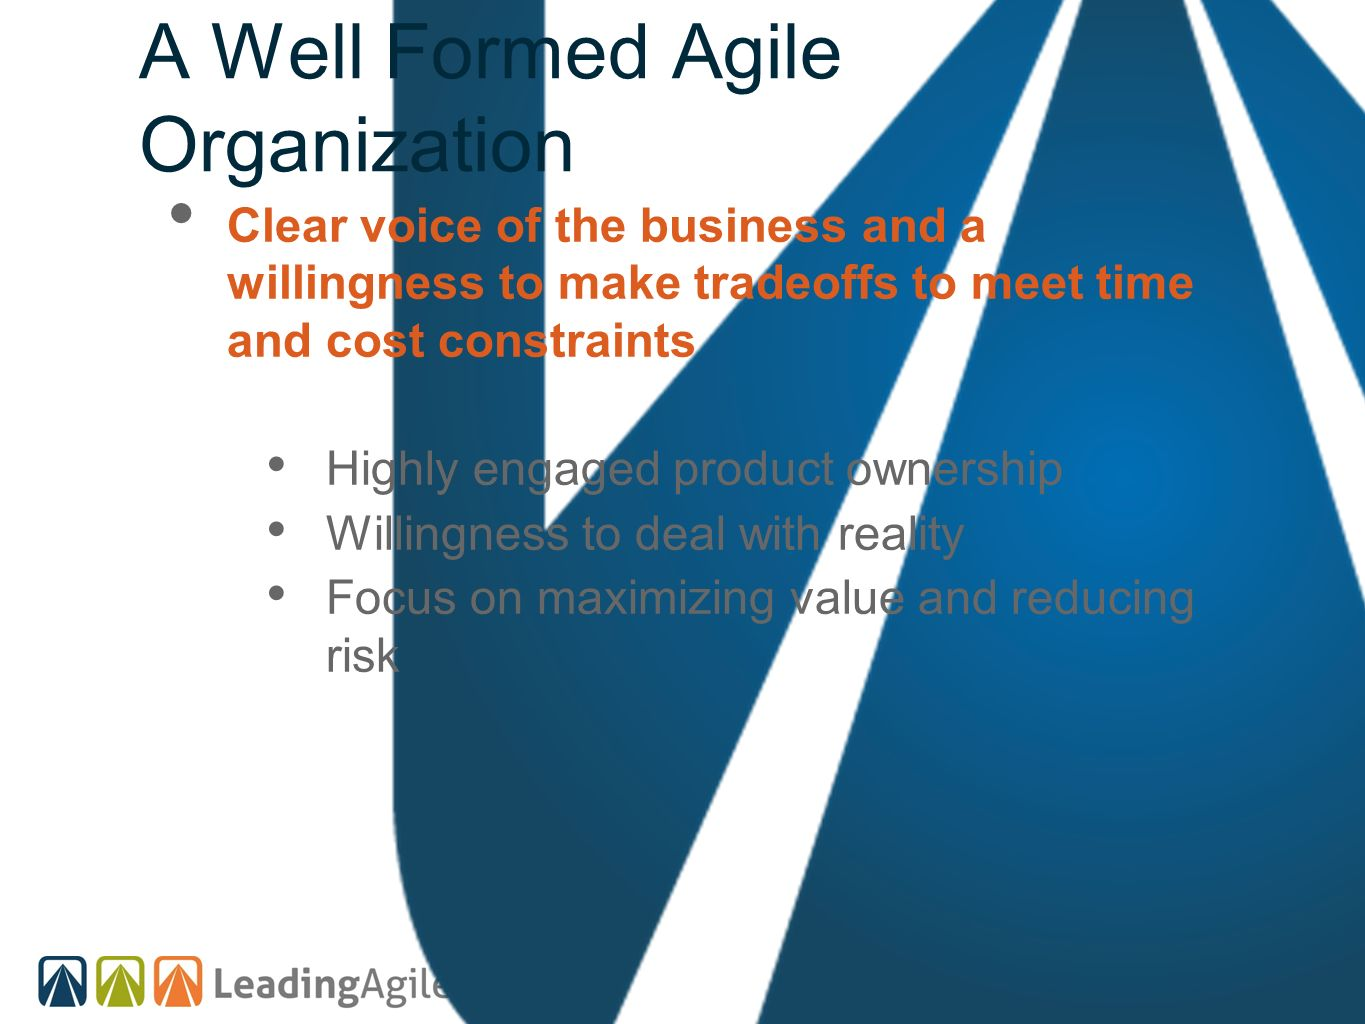 A Well Formed Agile Organization Clear voice of the business and a willingness to make tradeoffs to meet time and cost constraints Highly engaged prod